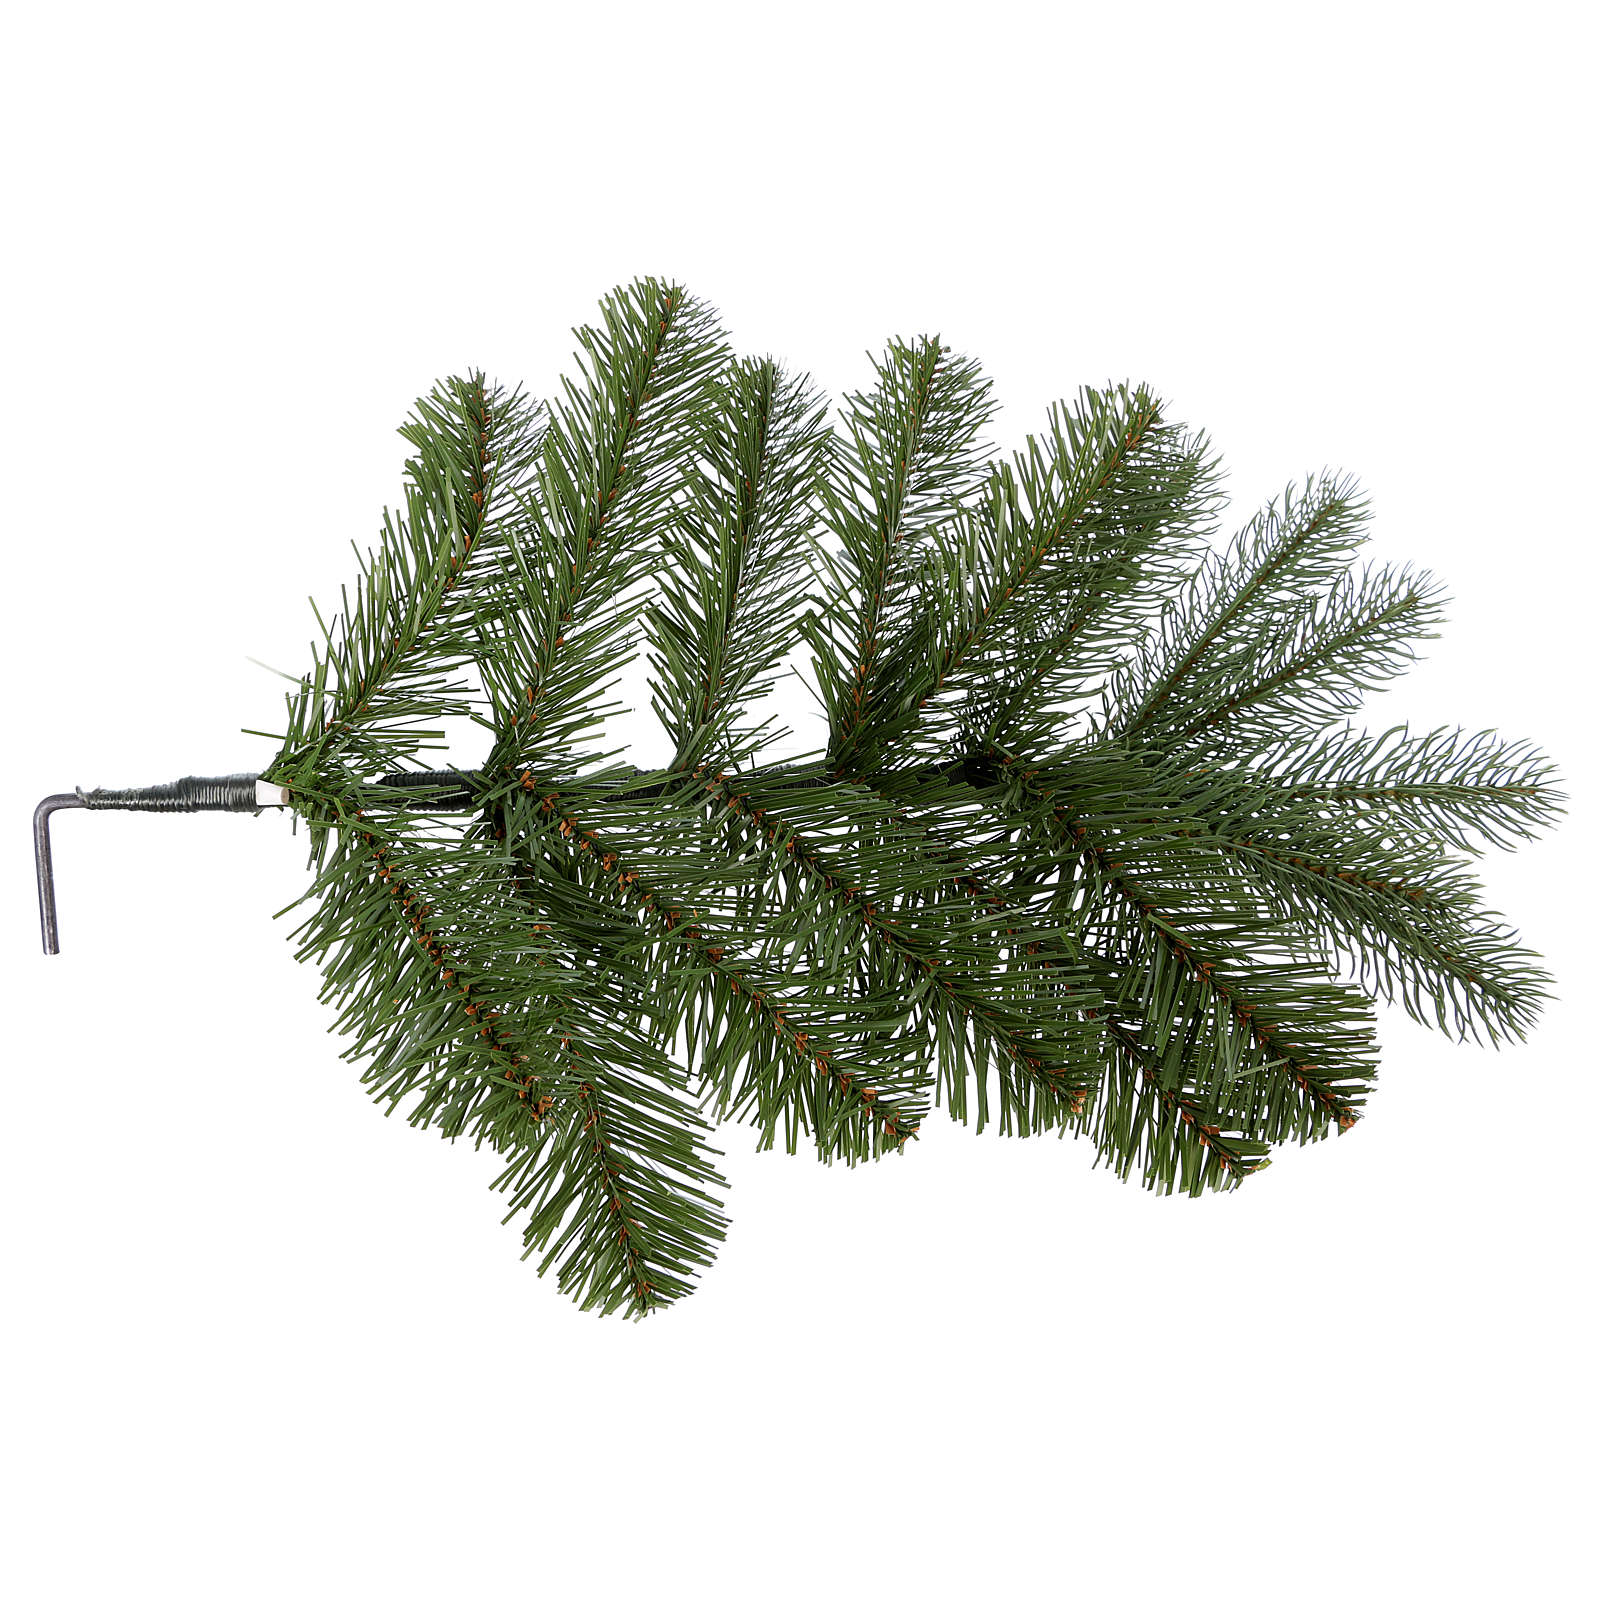 Christmas tree 270 cm Poly green colour Bayberry Spruce 3